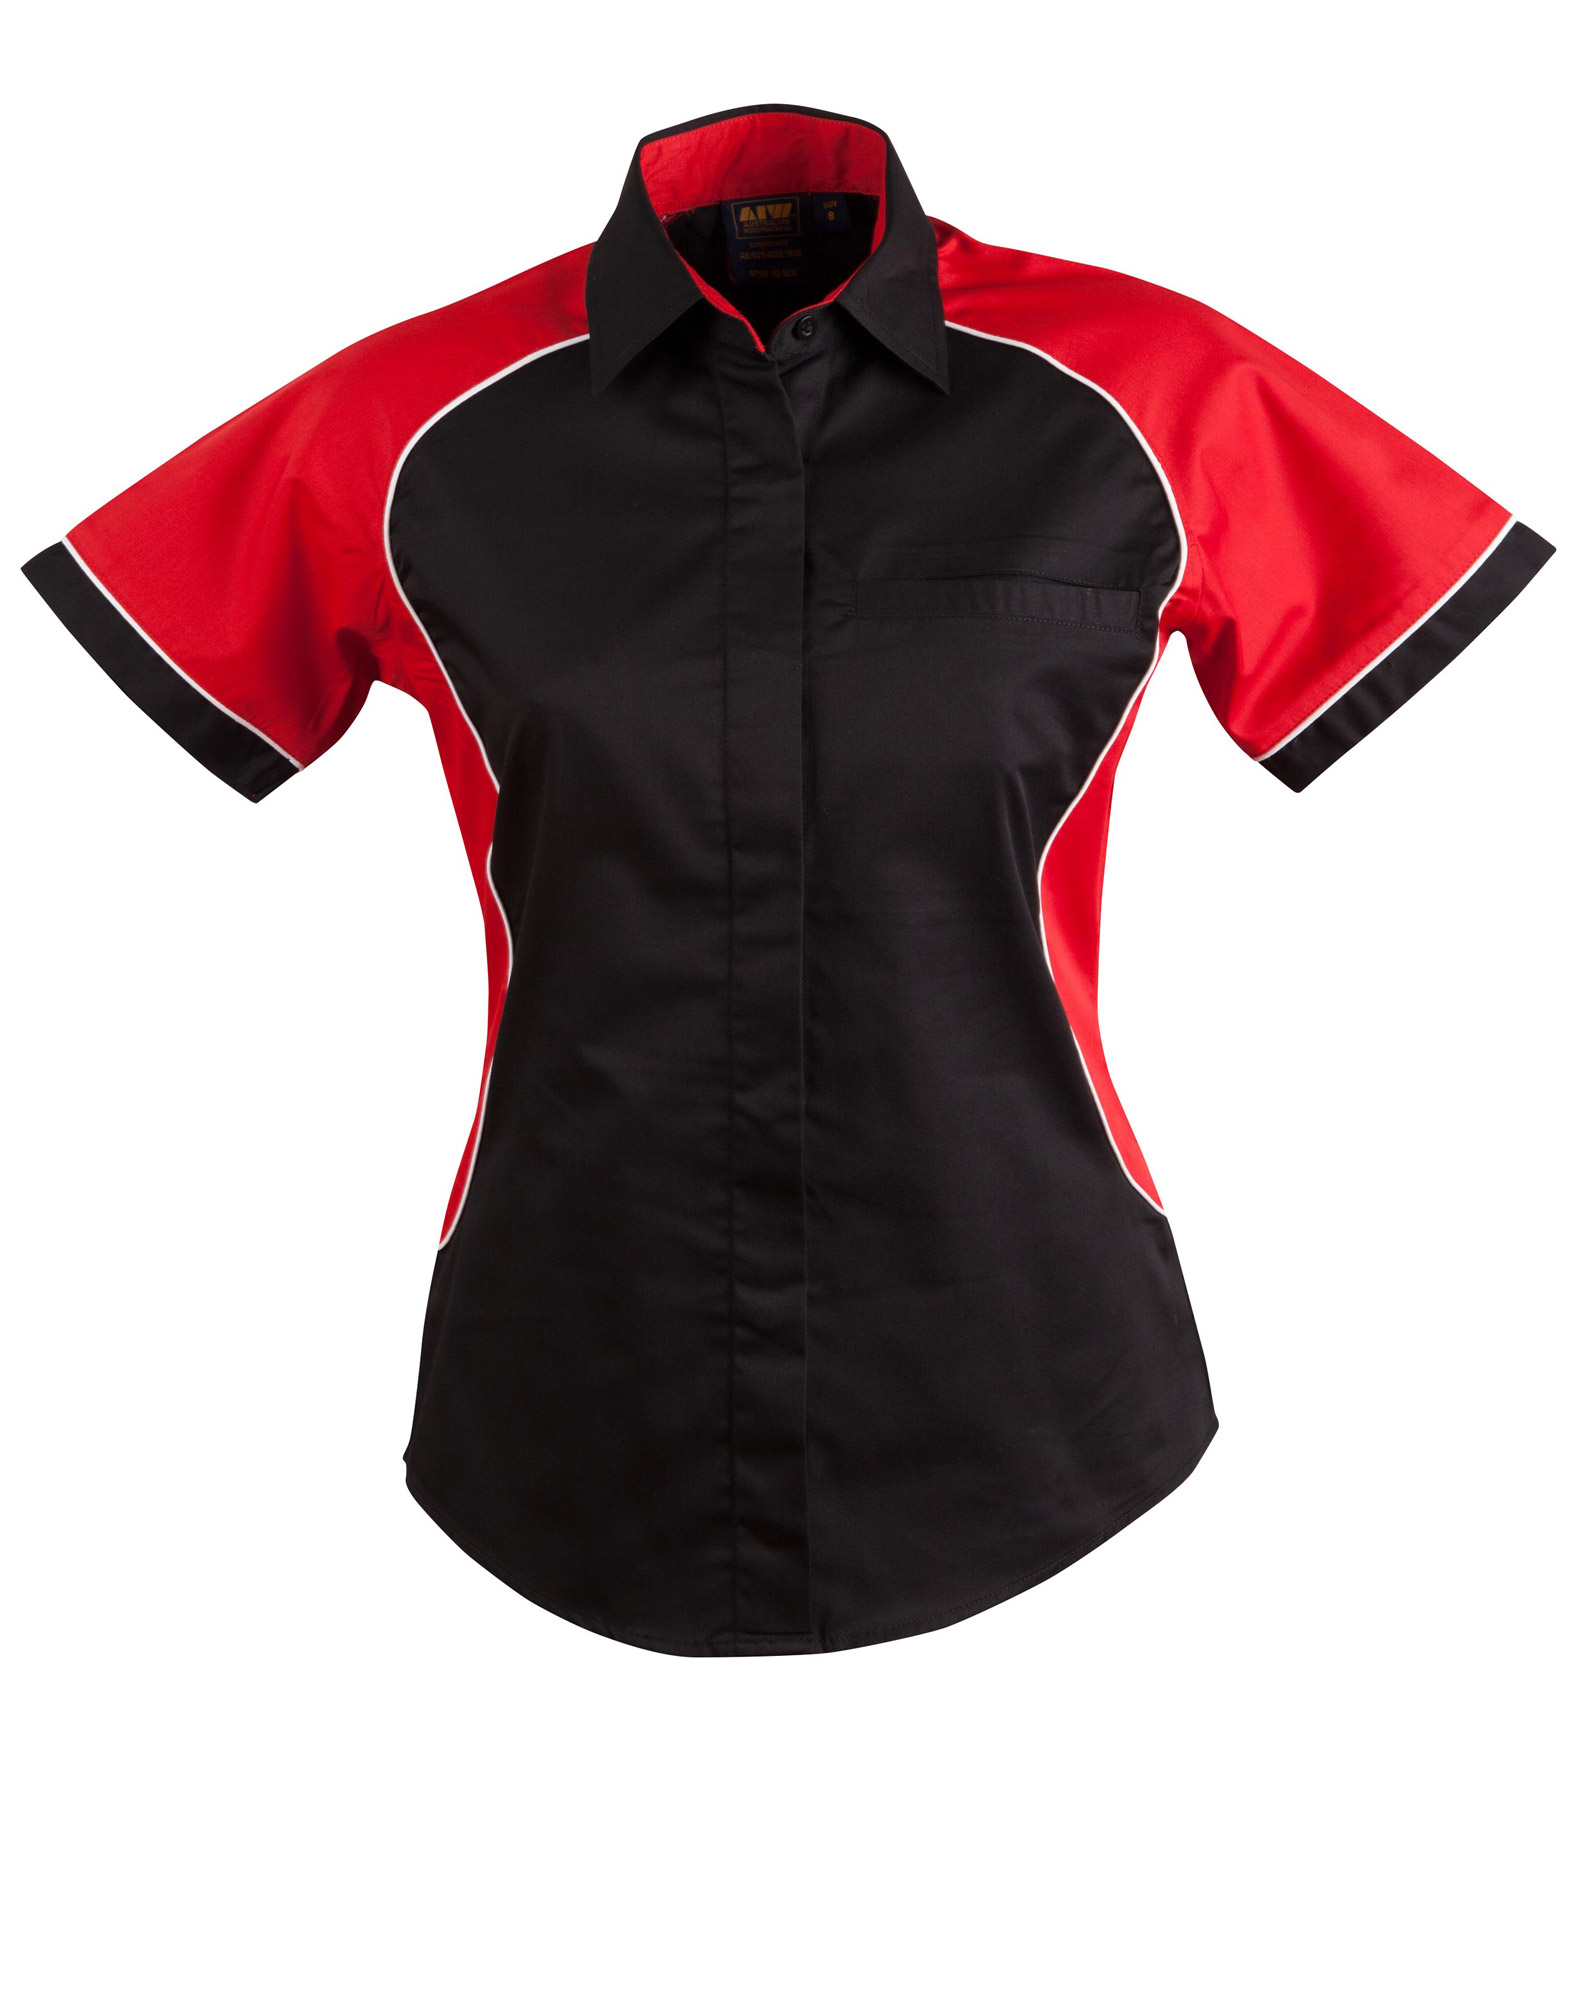 http://ws-imgs.s3.amazonaws.com/BUSINESSSHIRTS/BS16_Black.White.Red_Front_l.jpg